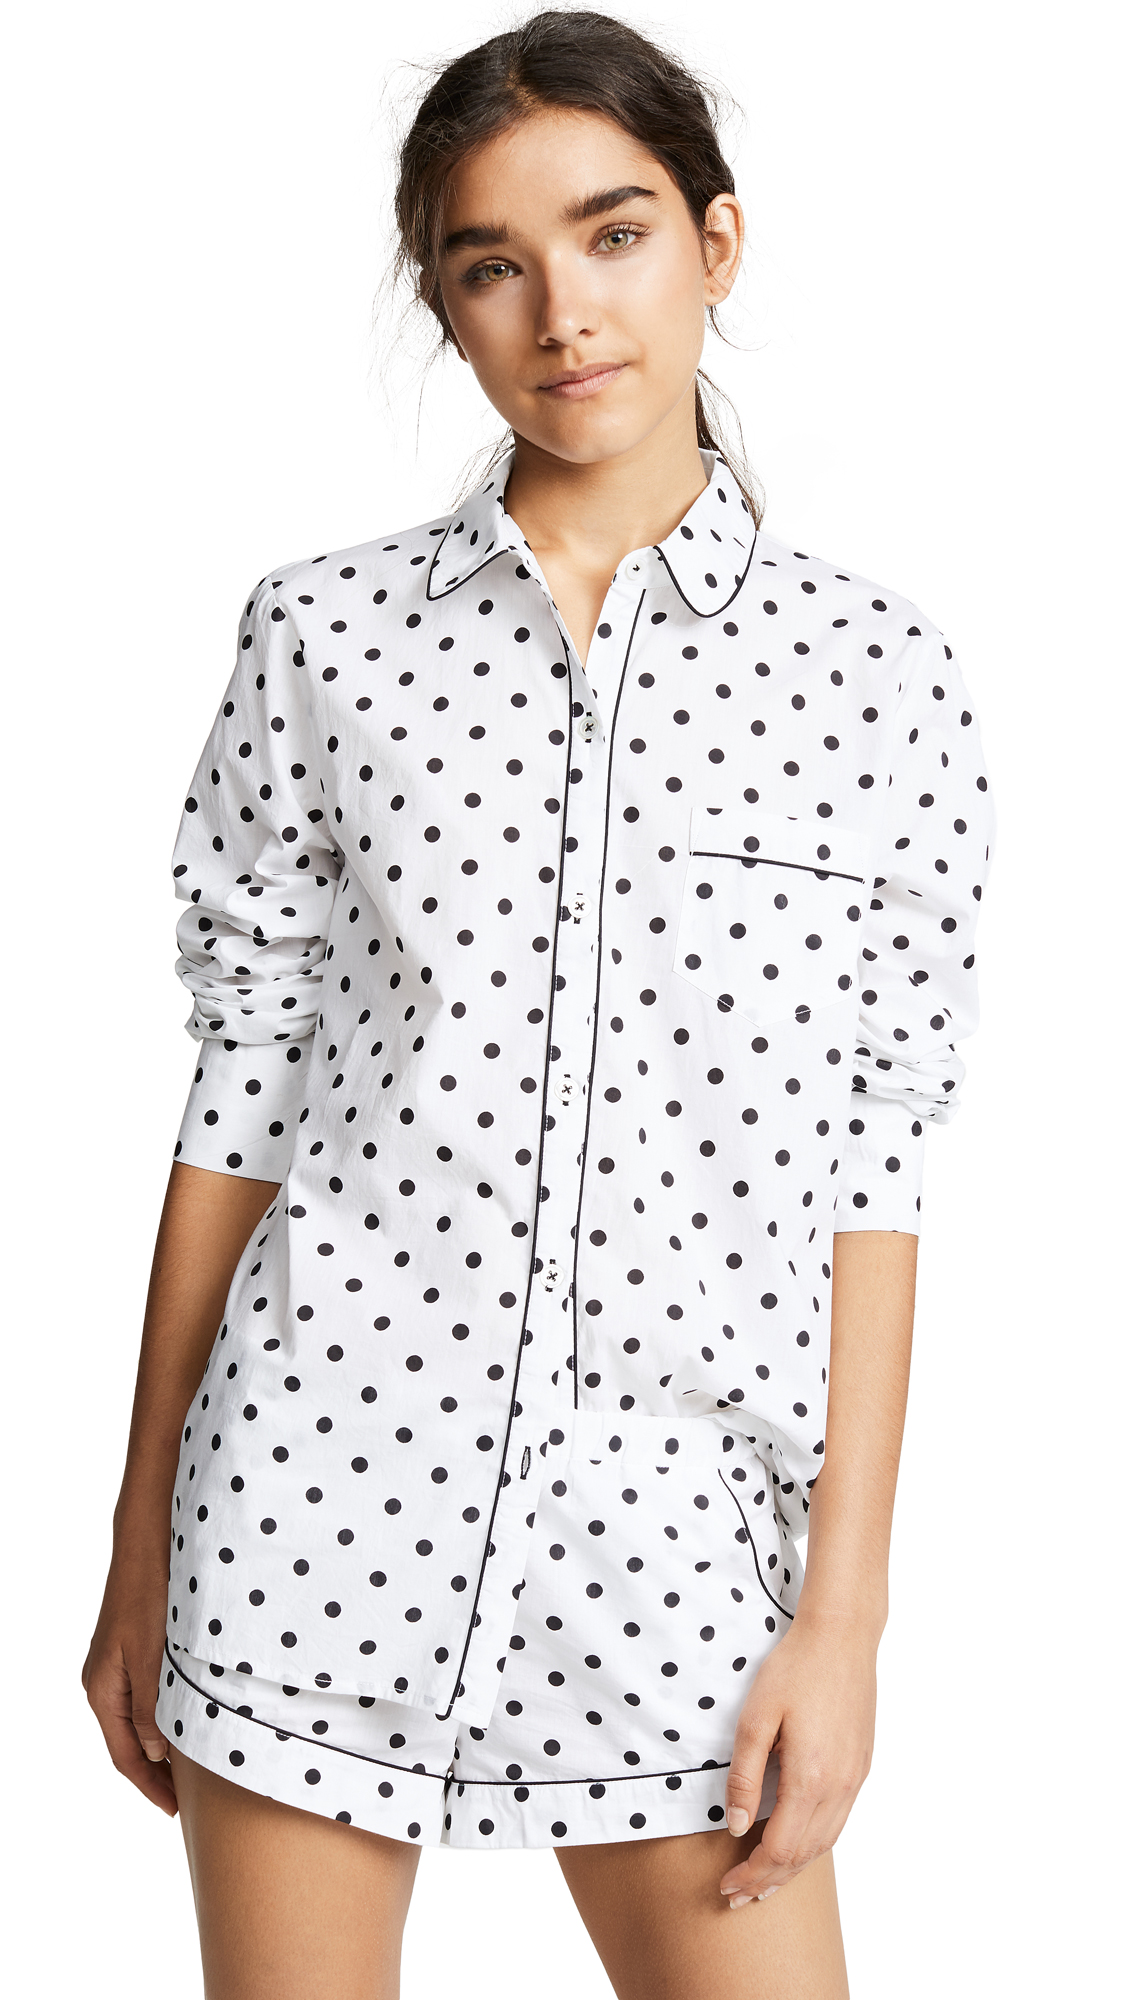 Fabric: Shirting Polka-dot print Button at placket Covered elastic at waist Patch breast pocket Slant hip pockets Shell: 100% cotton Wash cold Imported, India Measurements Measurements from size S Length: 26.5in / 67cm, from shoulder Rise: 8.25in / 21cm Inseam: 1.5in / 4cm Leg opening: 23.5in / 60cm